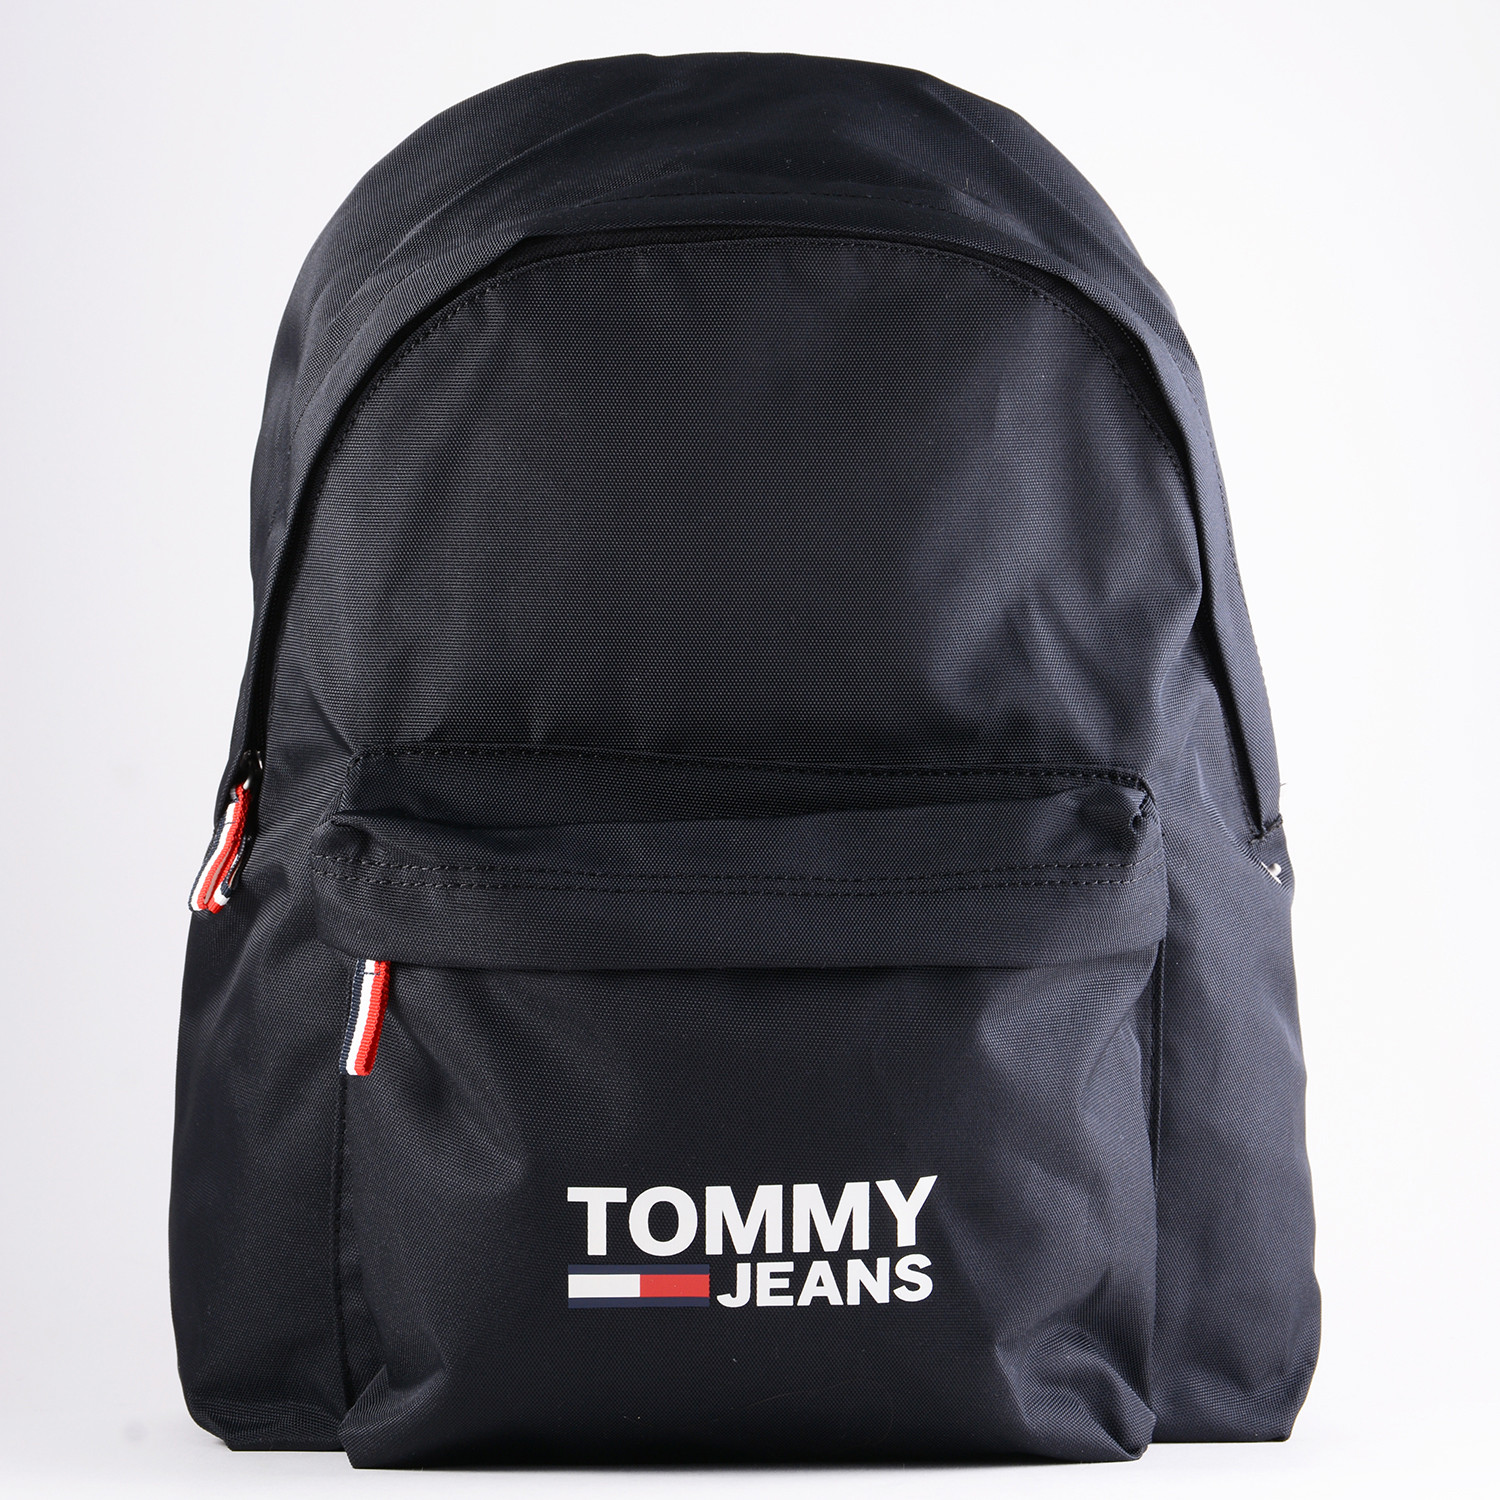 Tommy Jeans Cool City Backpack (9000046784_1469)